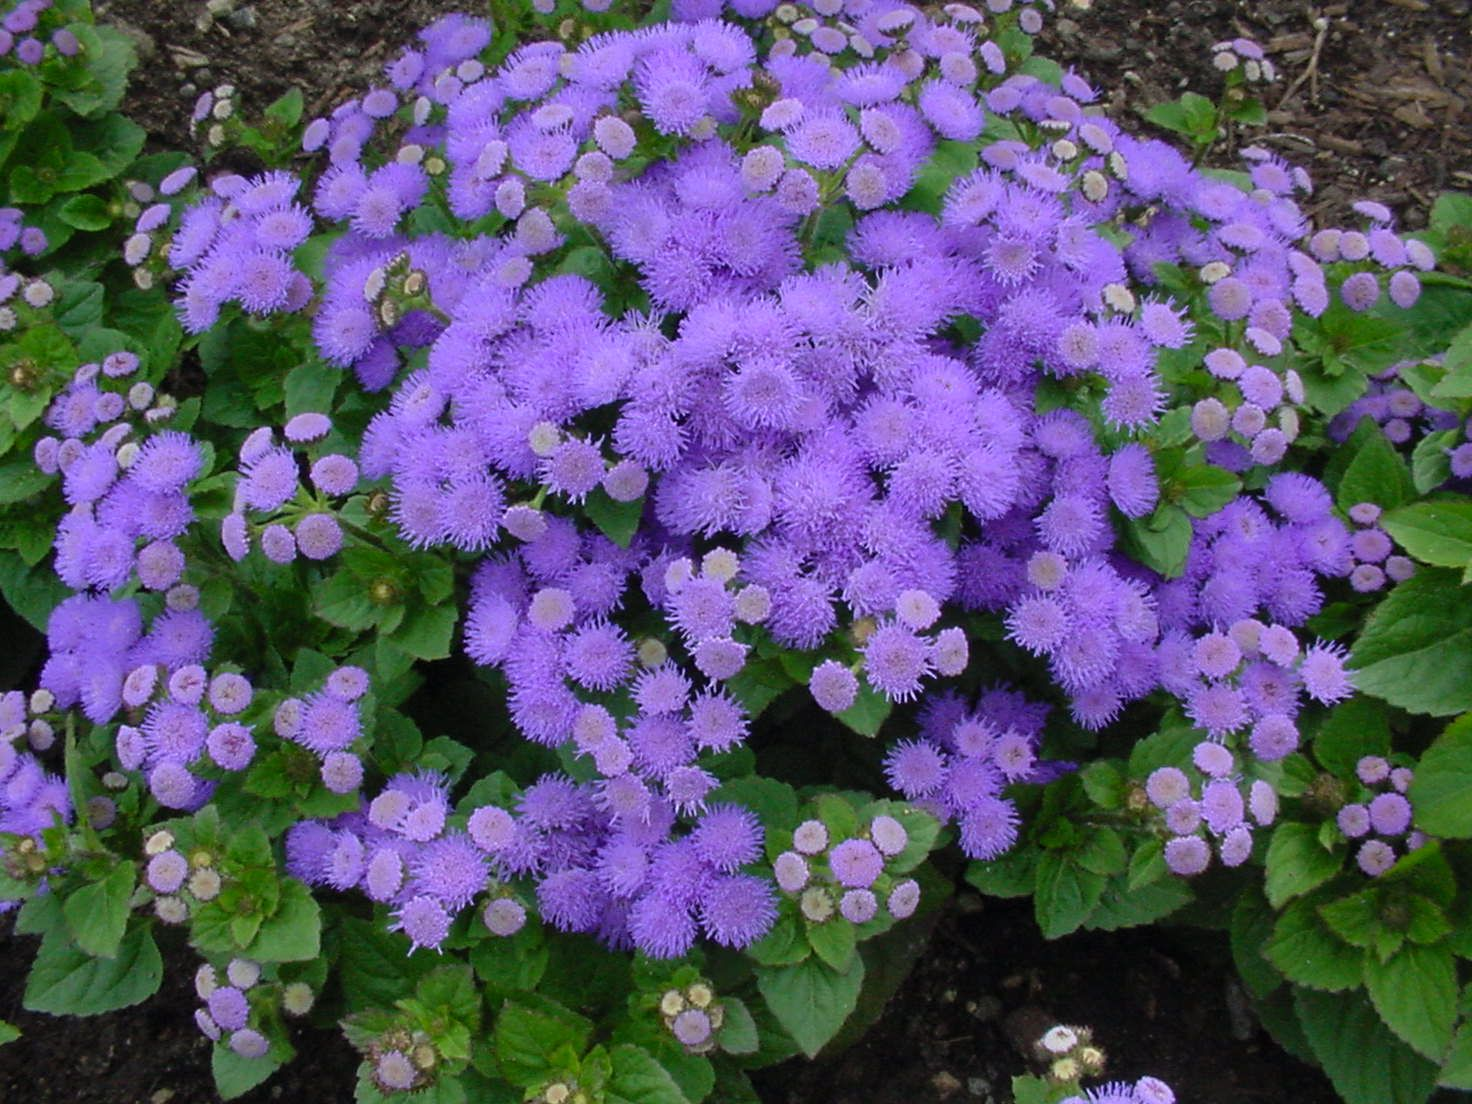 Ageratums are some of my favorite flowers and they actually grow in favourite summer annuals for container gardening ageratum cute purple fuzzy blooms izmirmasajfo Images